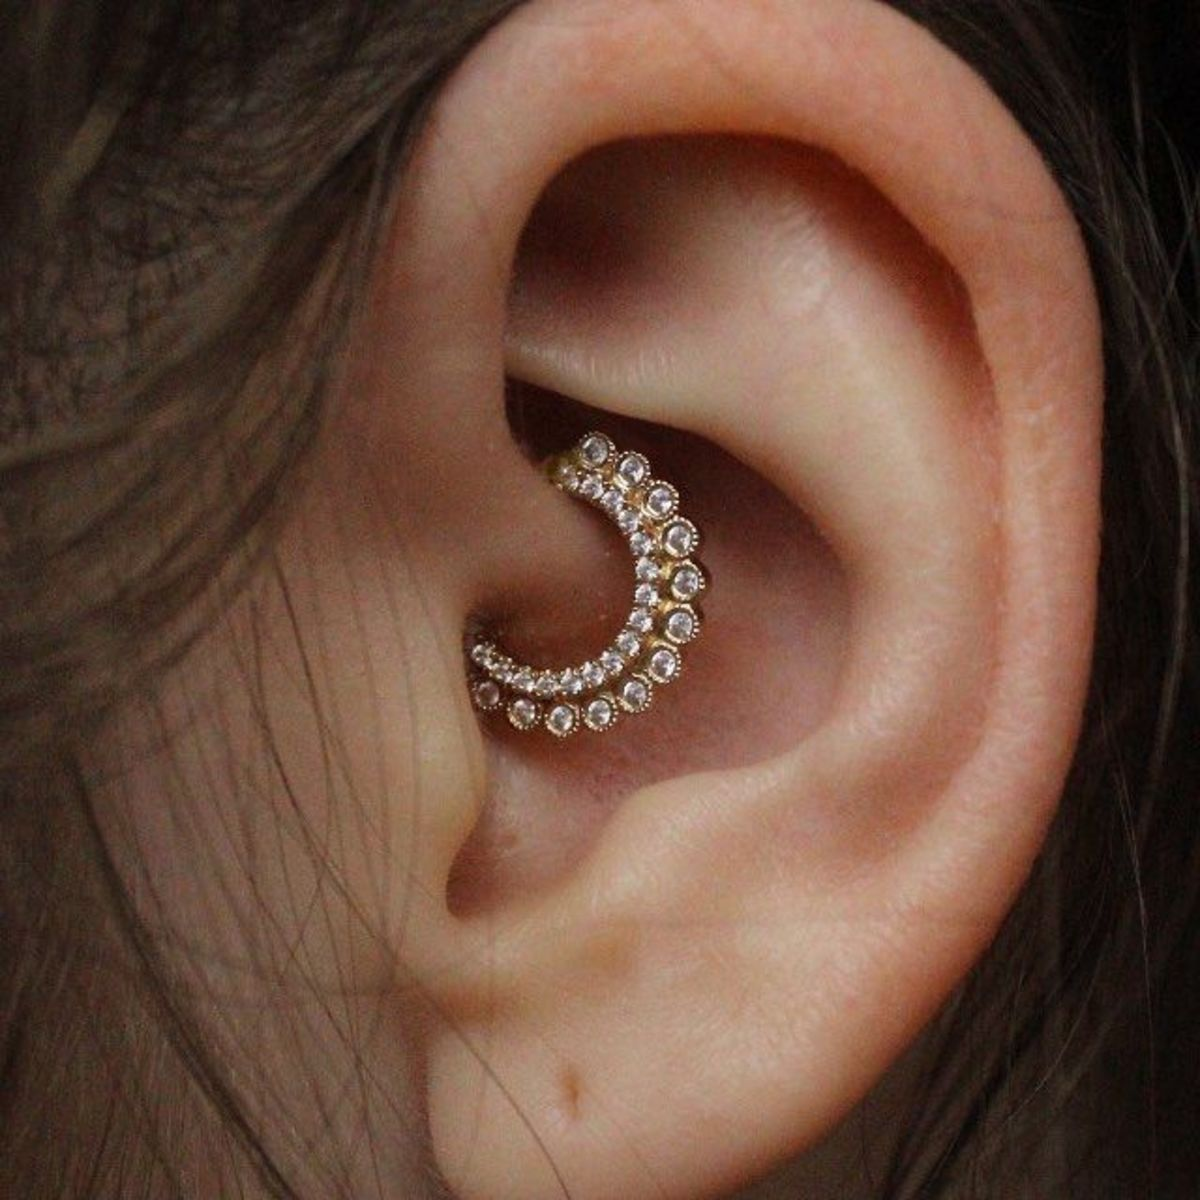 What can you do about an infected daith piercing?